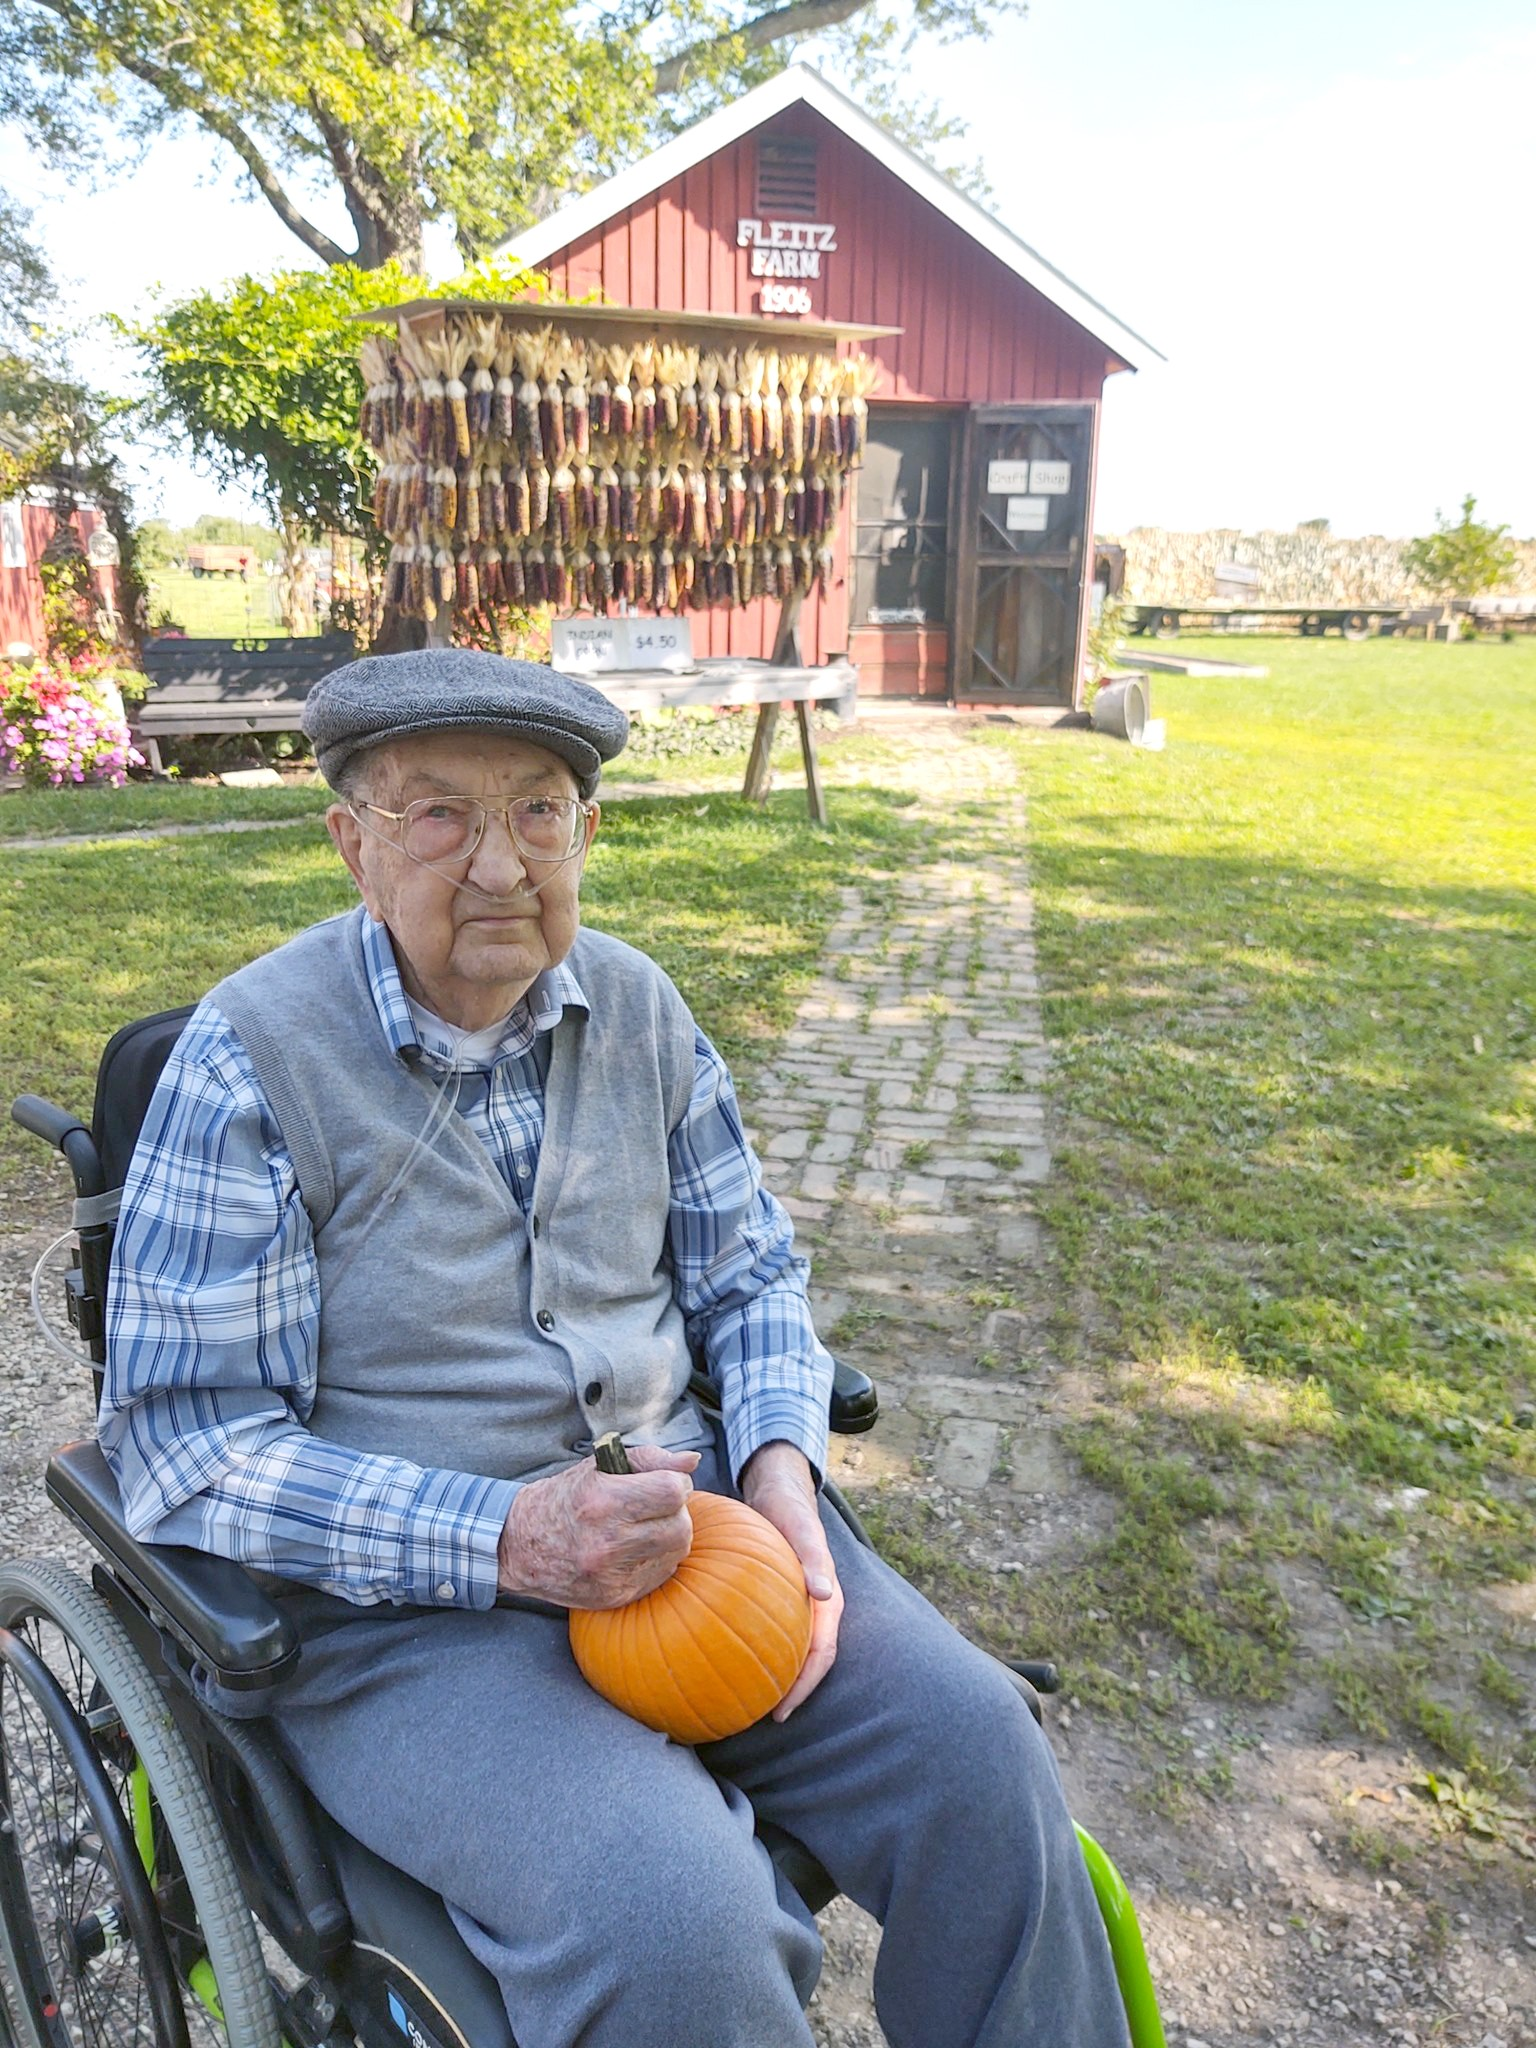 Bert Fleitz, a resident at Genoa Retirement Village, recently enjoyed a trip to the family farm, where he visited with several members of his extended family. The trip was part of Trilogy Foundation's Live a Dream program. (Submitted photo)